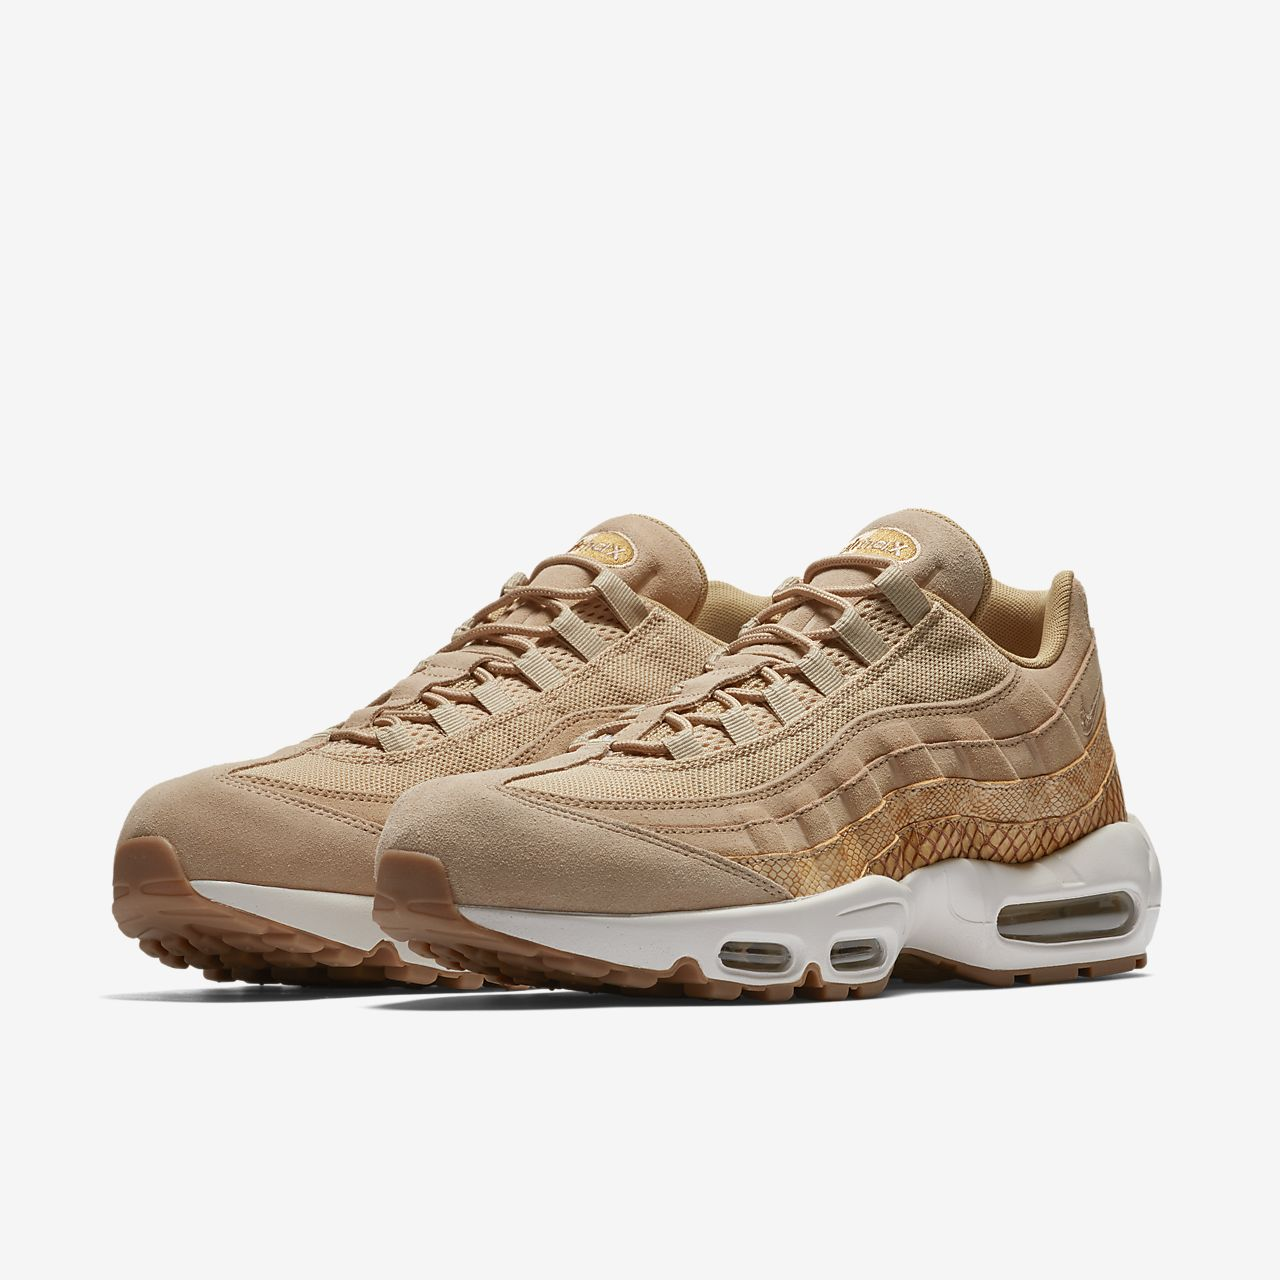 nike air max 95 premium se gold nz